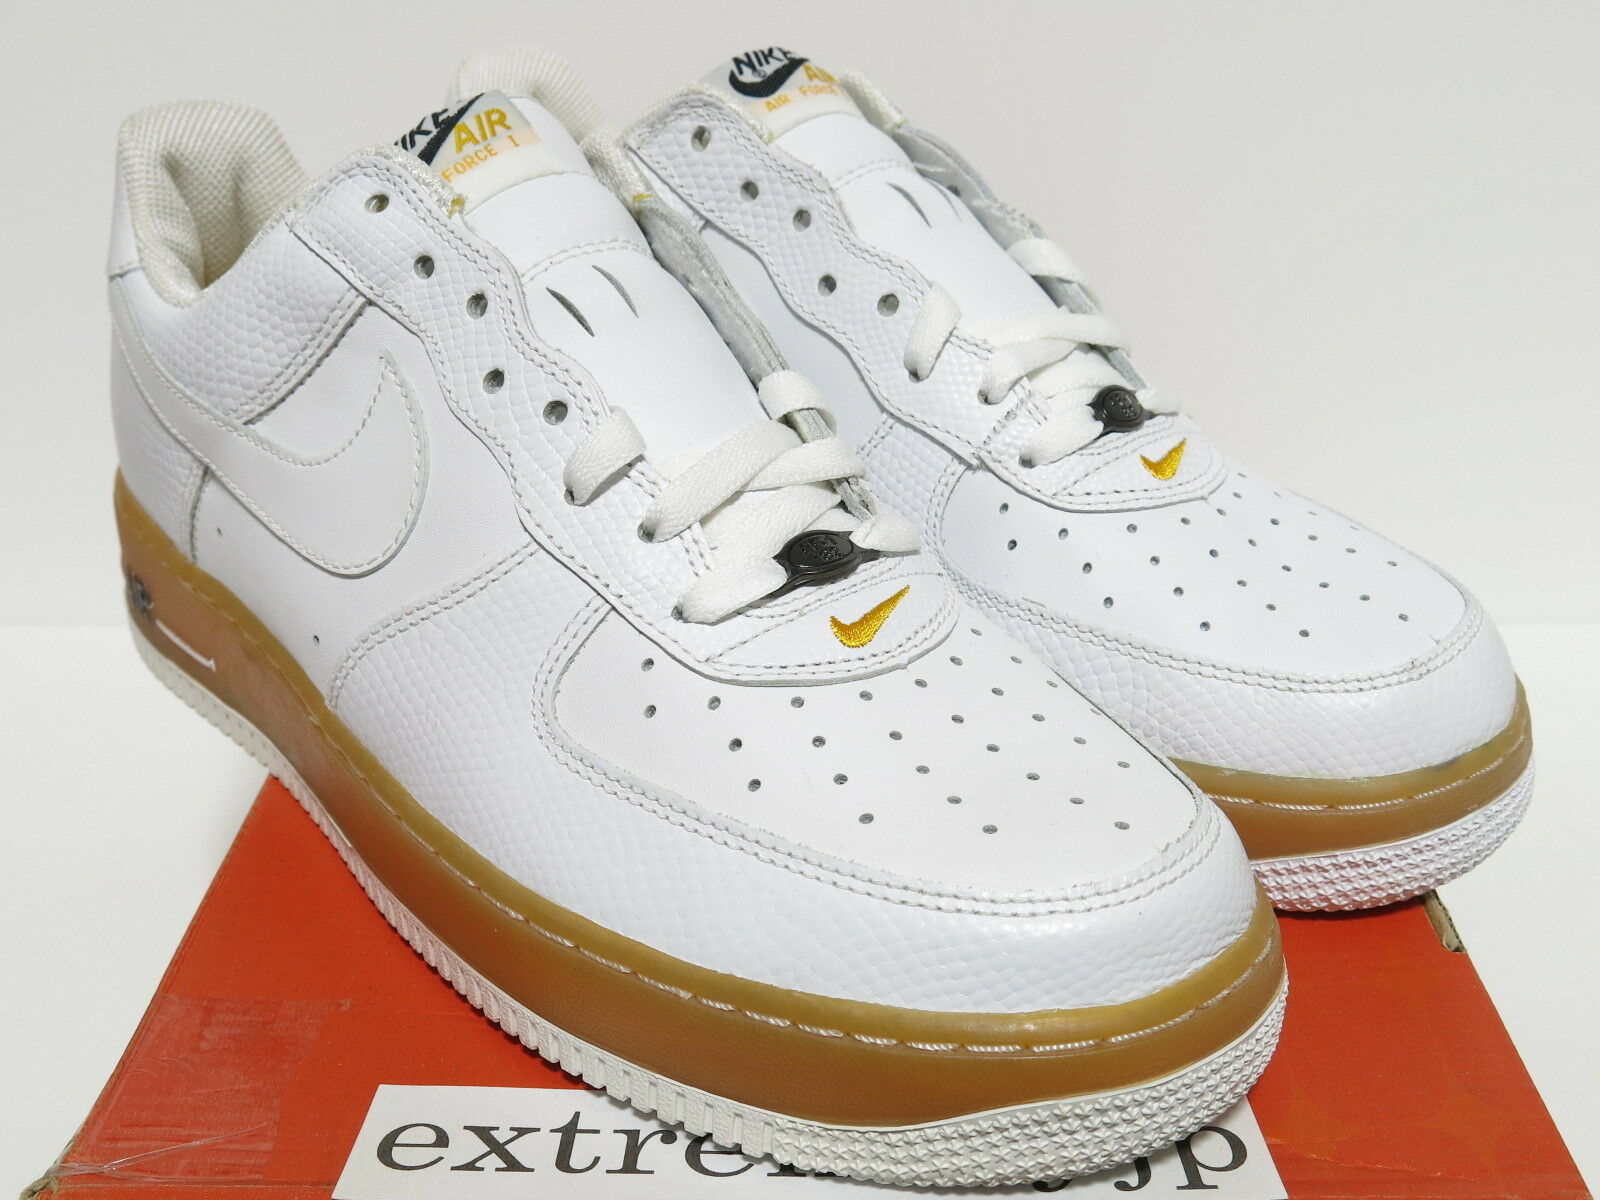 DS 2018 NIKE AIR FORCE 1 LOW JD Sport white/white gum 306353-902 sz 11